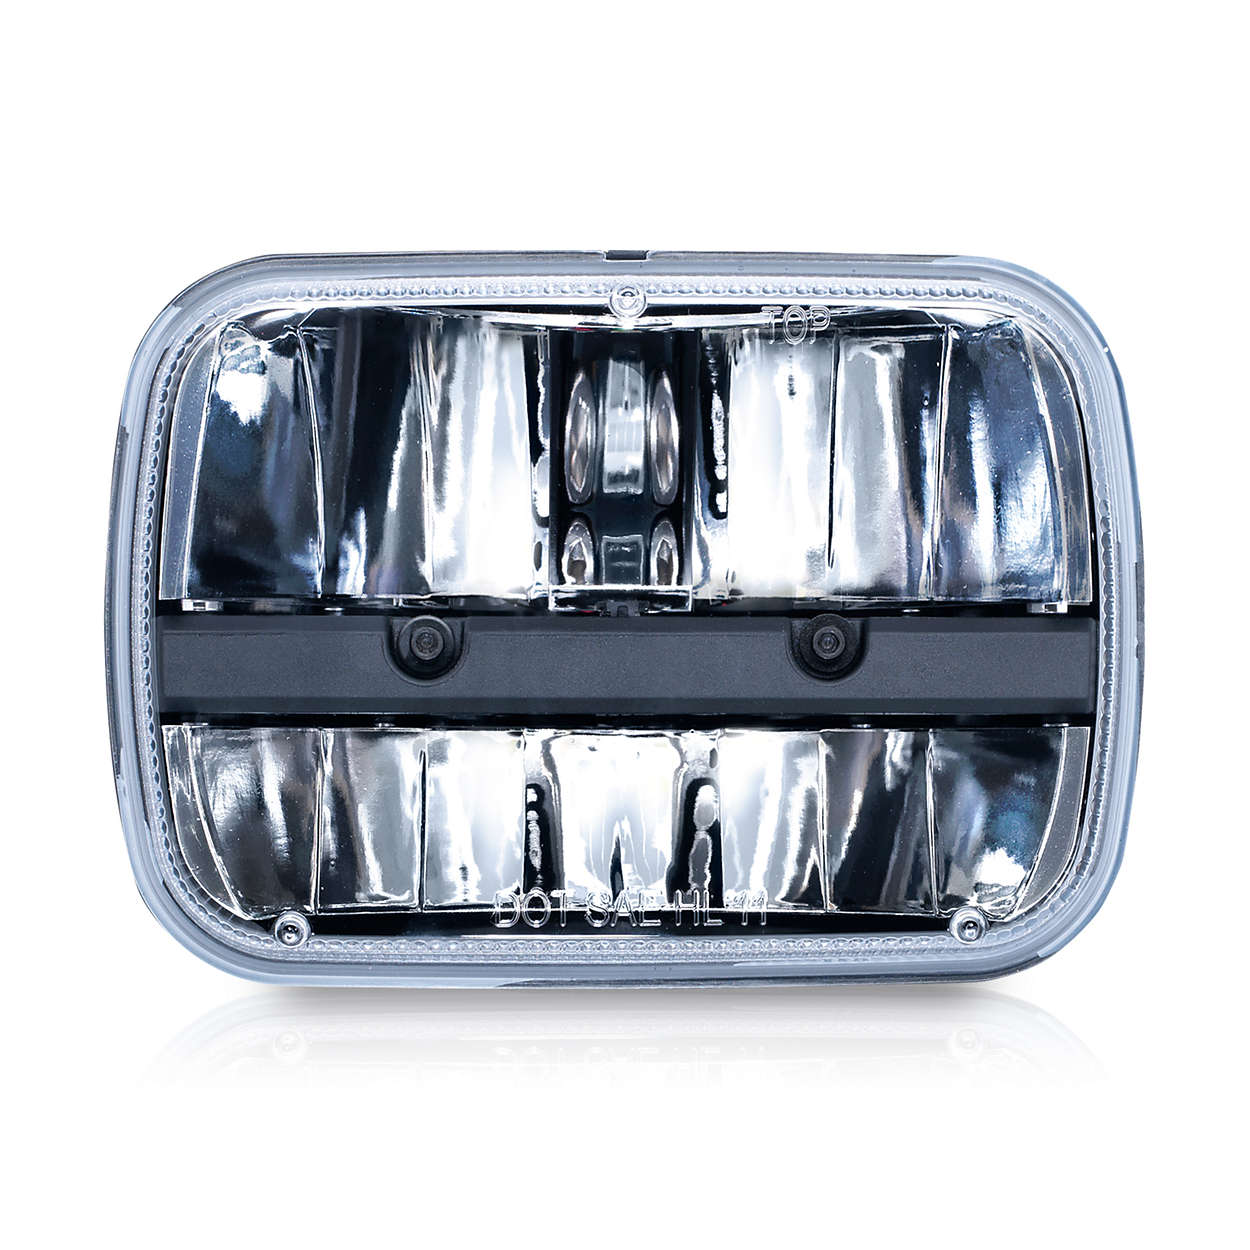 led headlamp 5 x 7 rectangular led02x1 philips. Black Bedroom Furniture Sets. Home Design Ideas